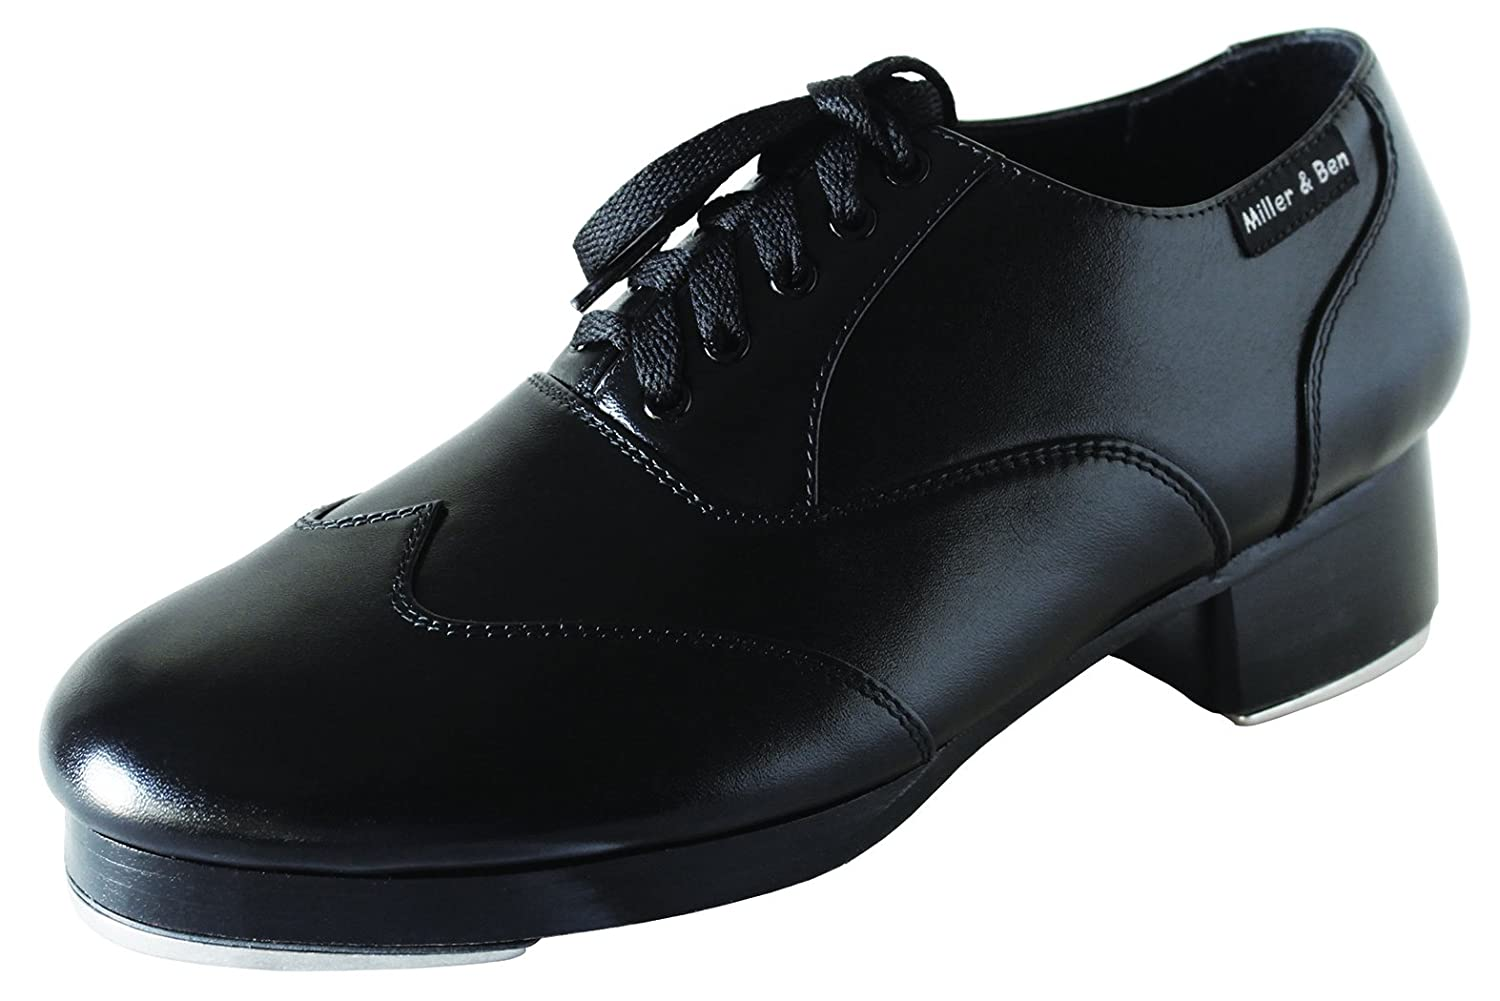 Standard Sizes Miller /& Ben Tap Shoes; Triple Threat; All Black